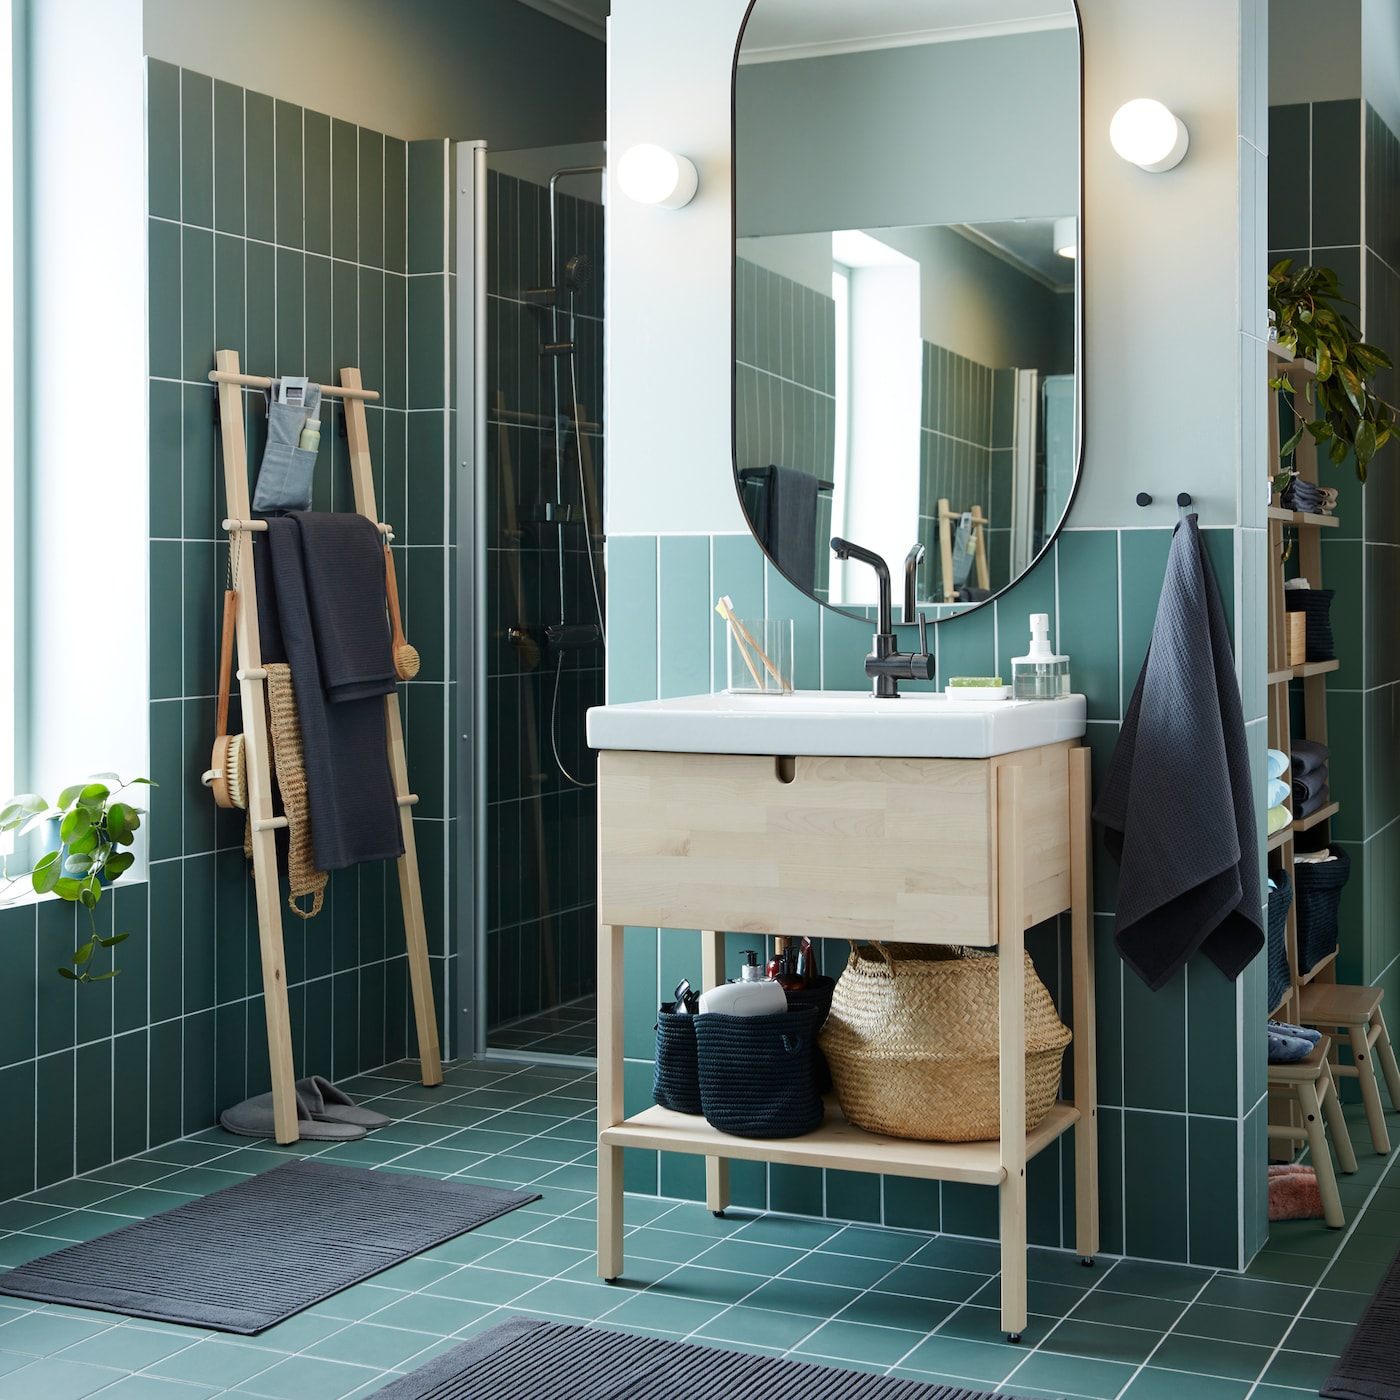 A bathroom with a wash-stand/wash-basin in birch/white, a large oval mirror and dark grey bath towels and bath mats.